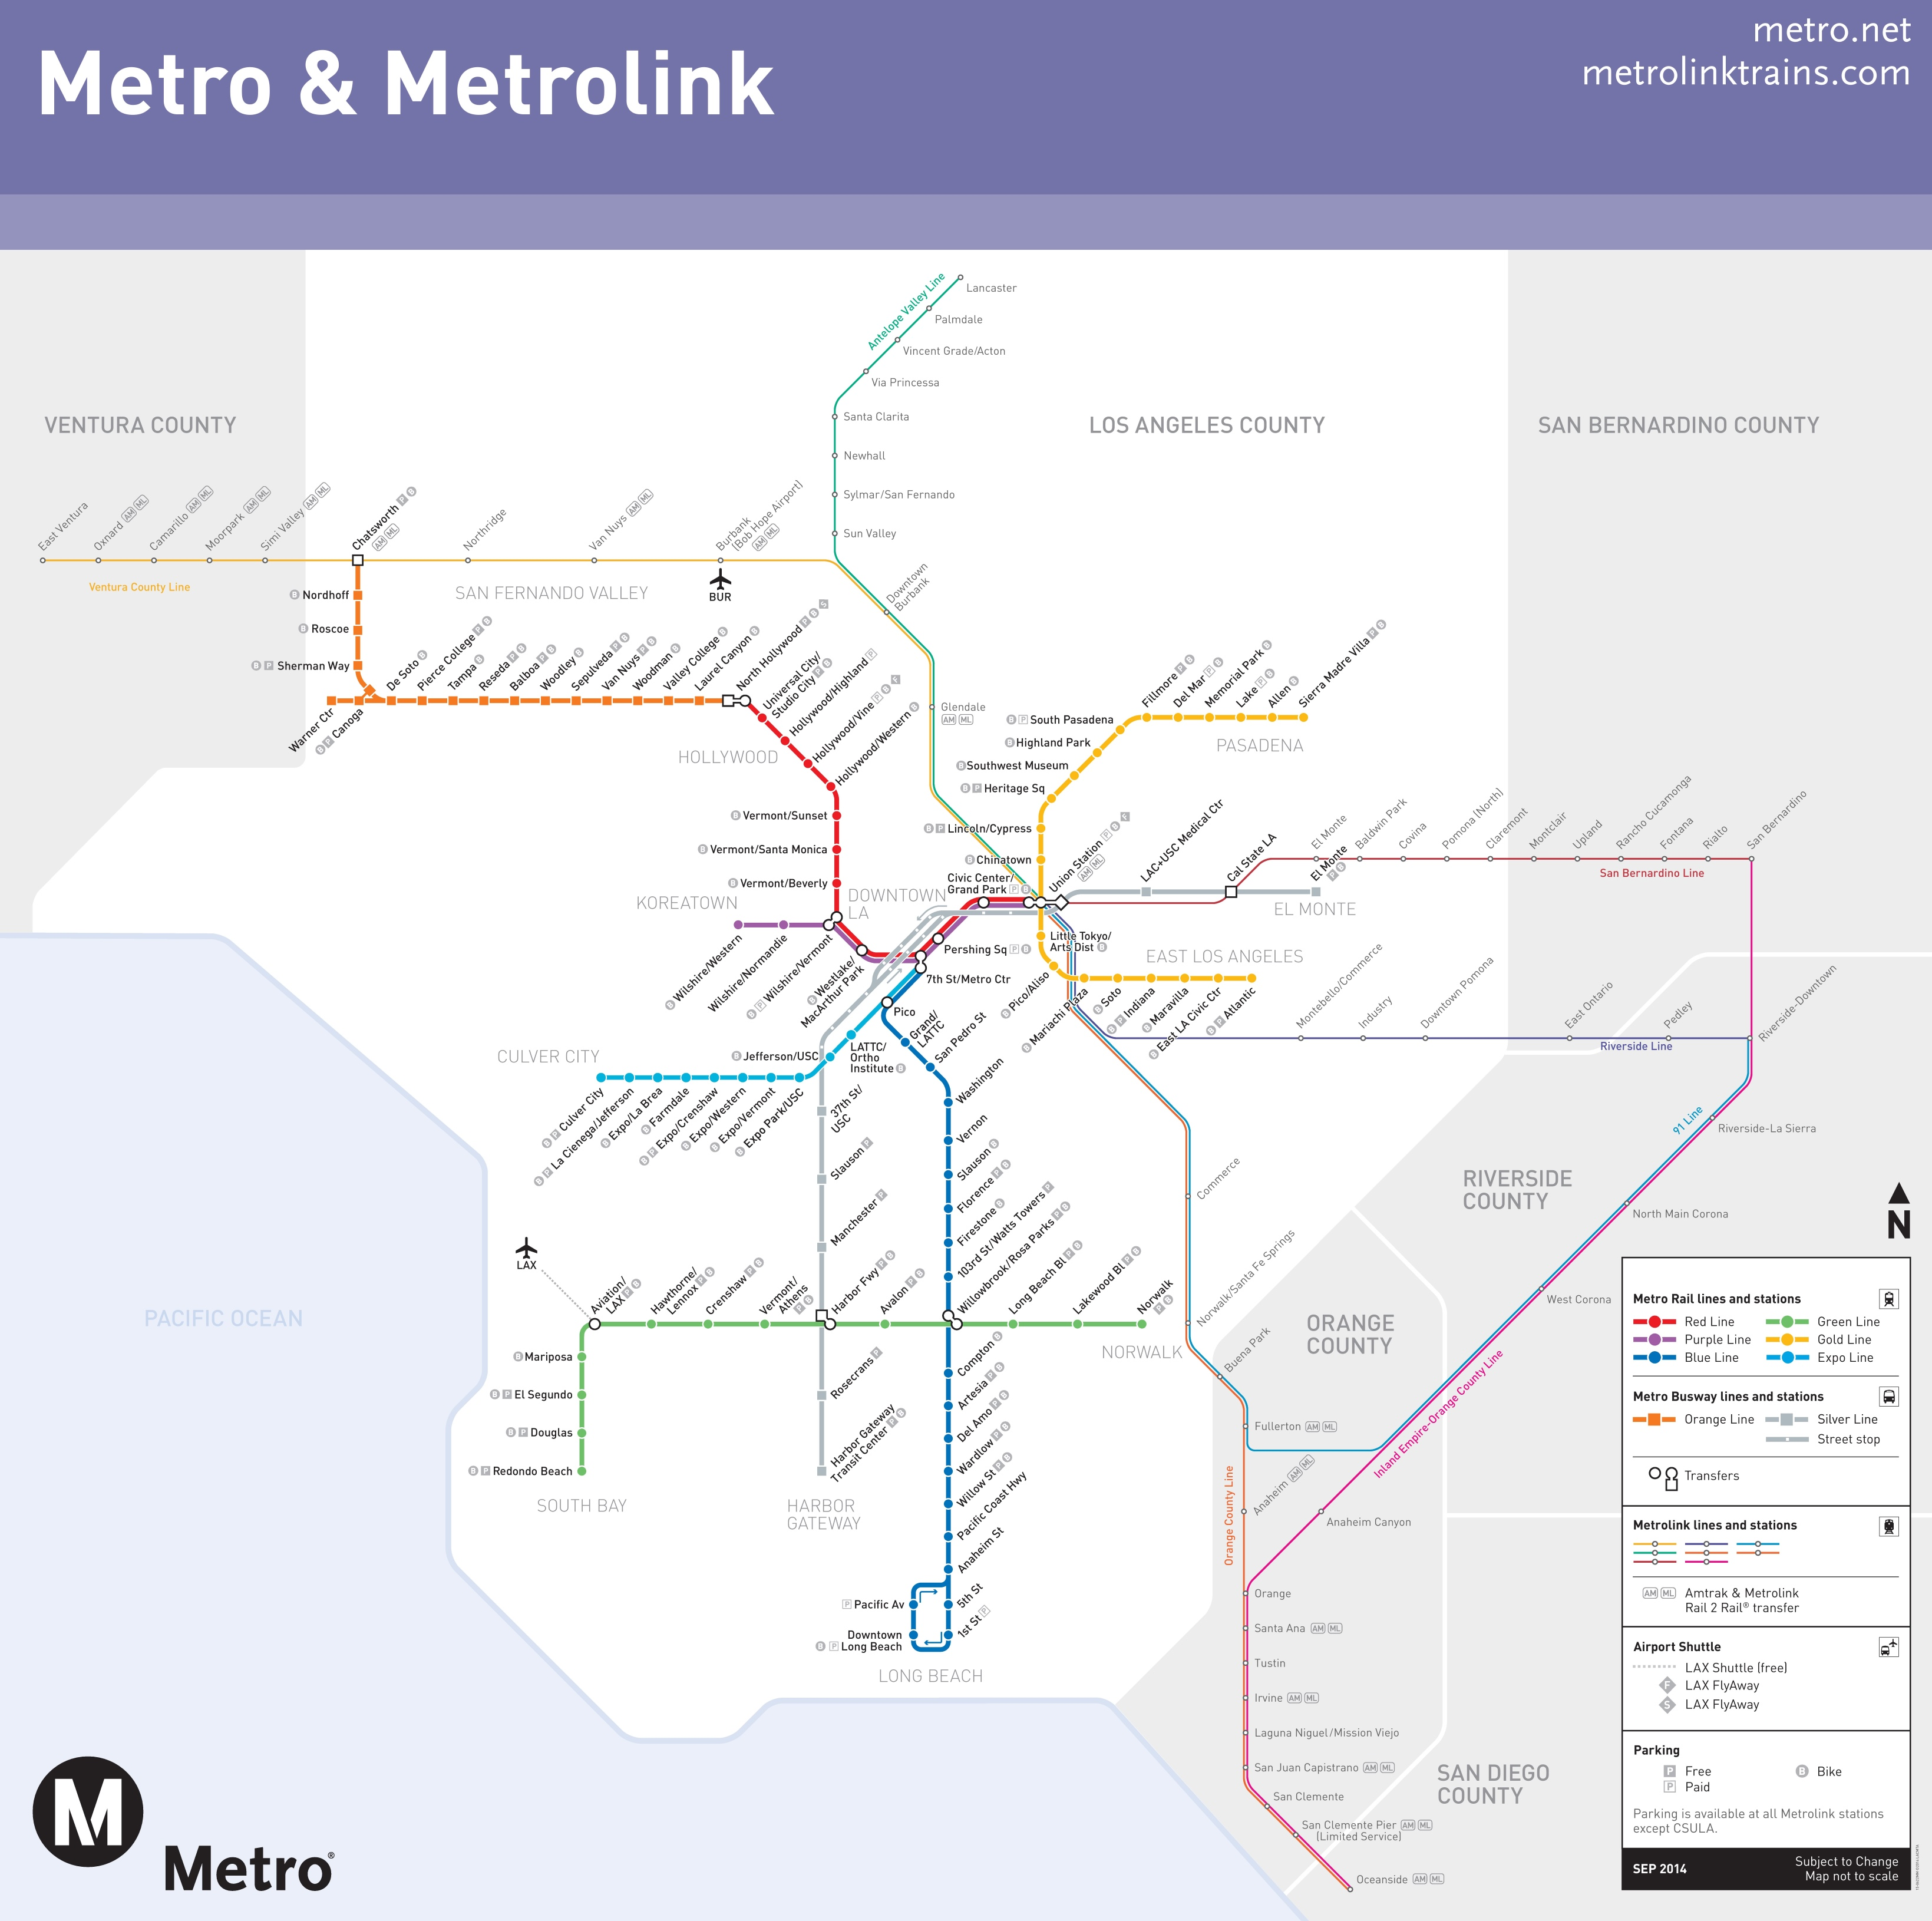 arkansas in usa map with Los Angeles Metro Metrolink Map on Map Of Rwanda together with 4145797 further Sverige Politiska Kartan Bild likewise Us 2014 Mid Term Election Results moreover Los Angeles Metro Metrolink Map.